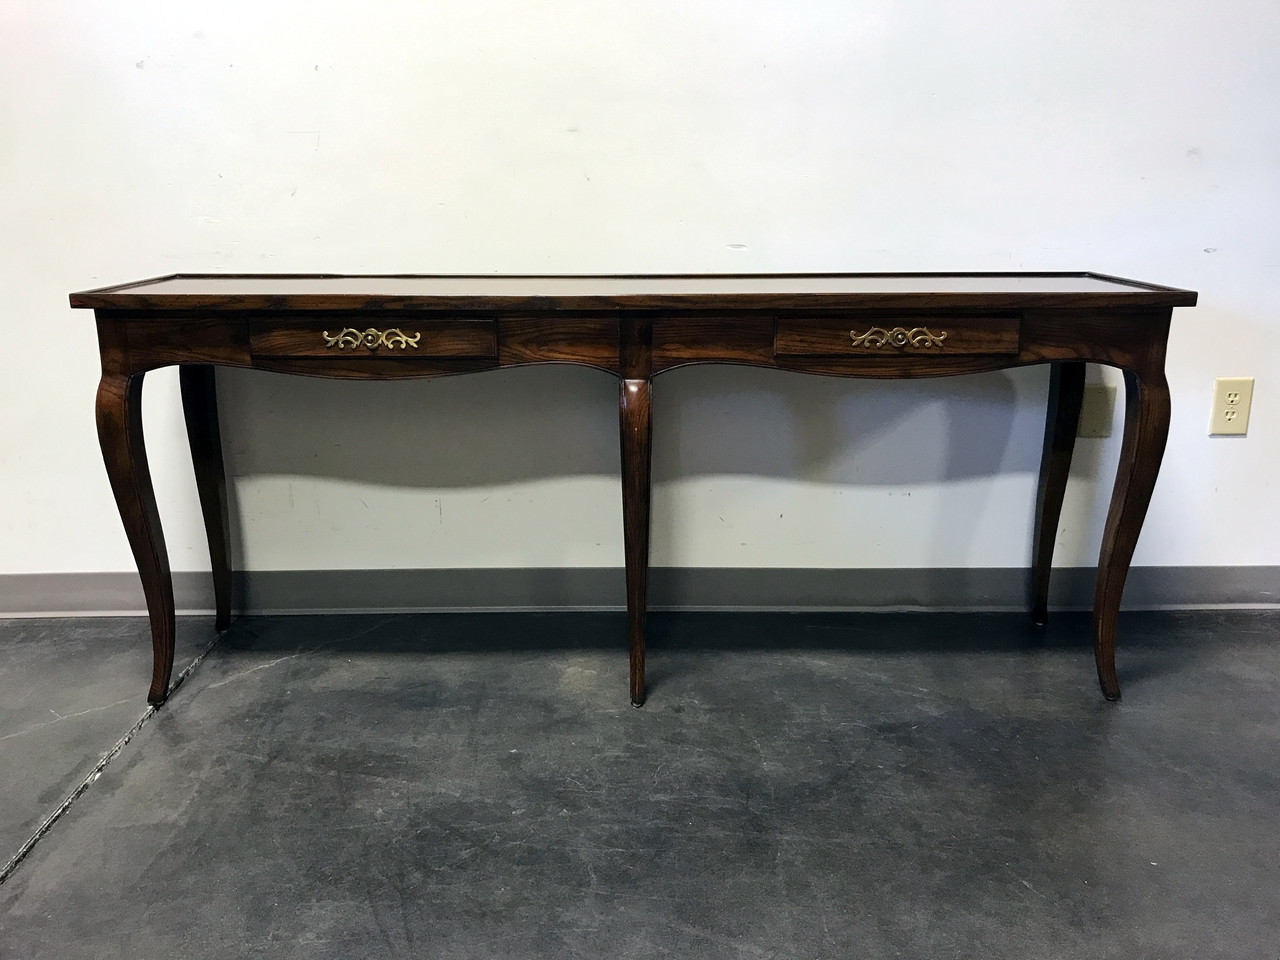 Sold out henredon inlaid oak french country style console sofa sold out henredon inlaid oak french country style console sofa table geotapseo Gallery